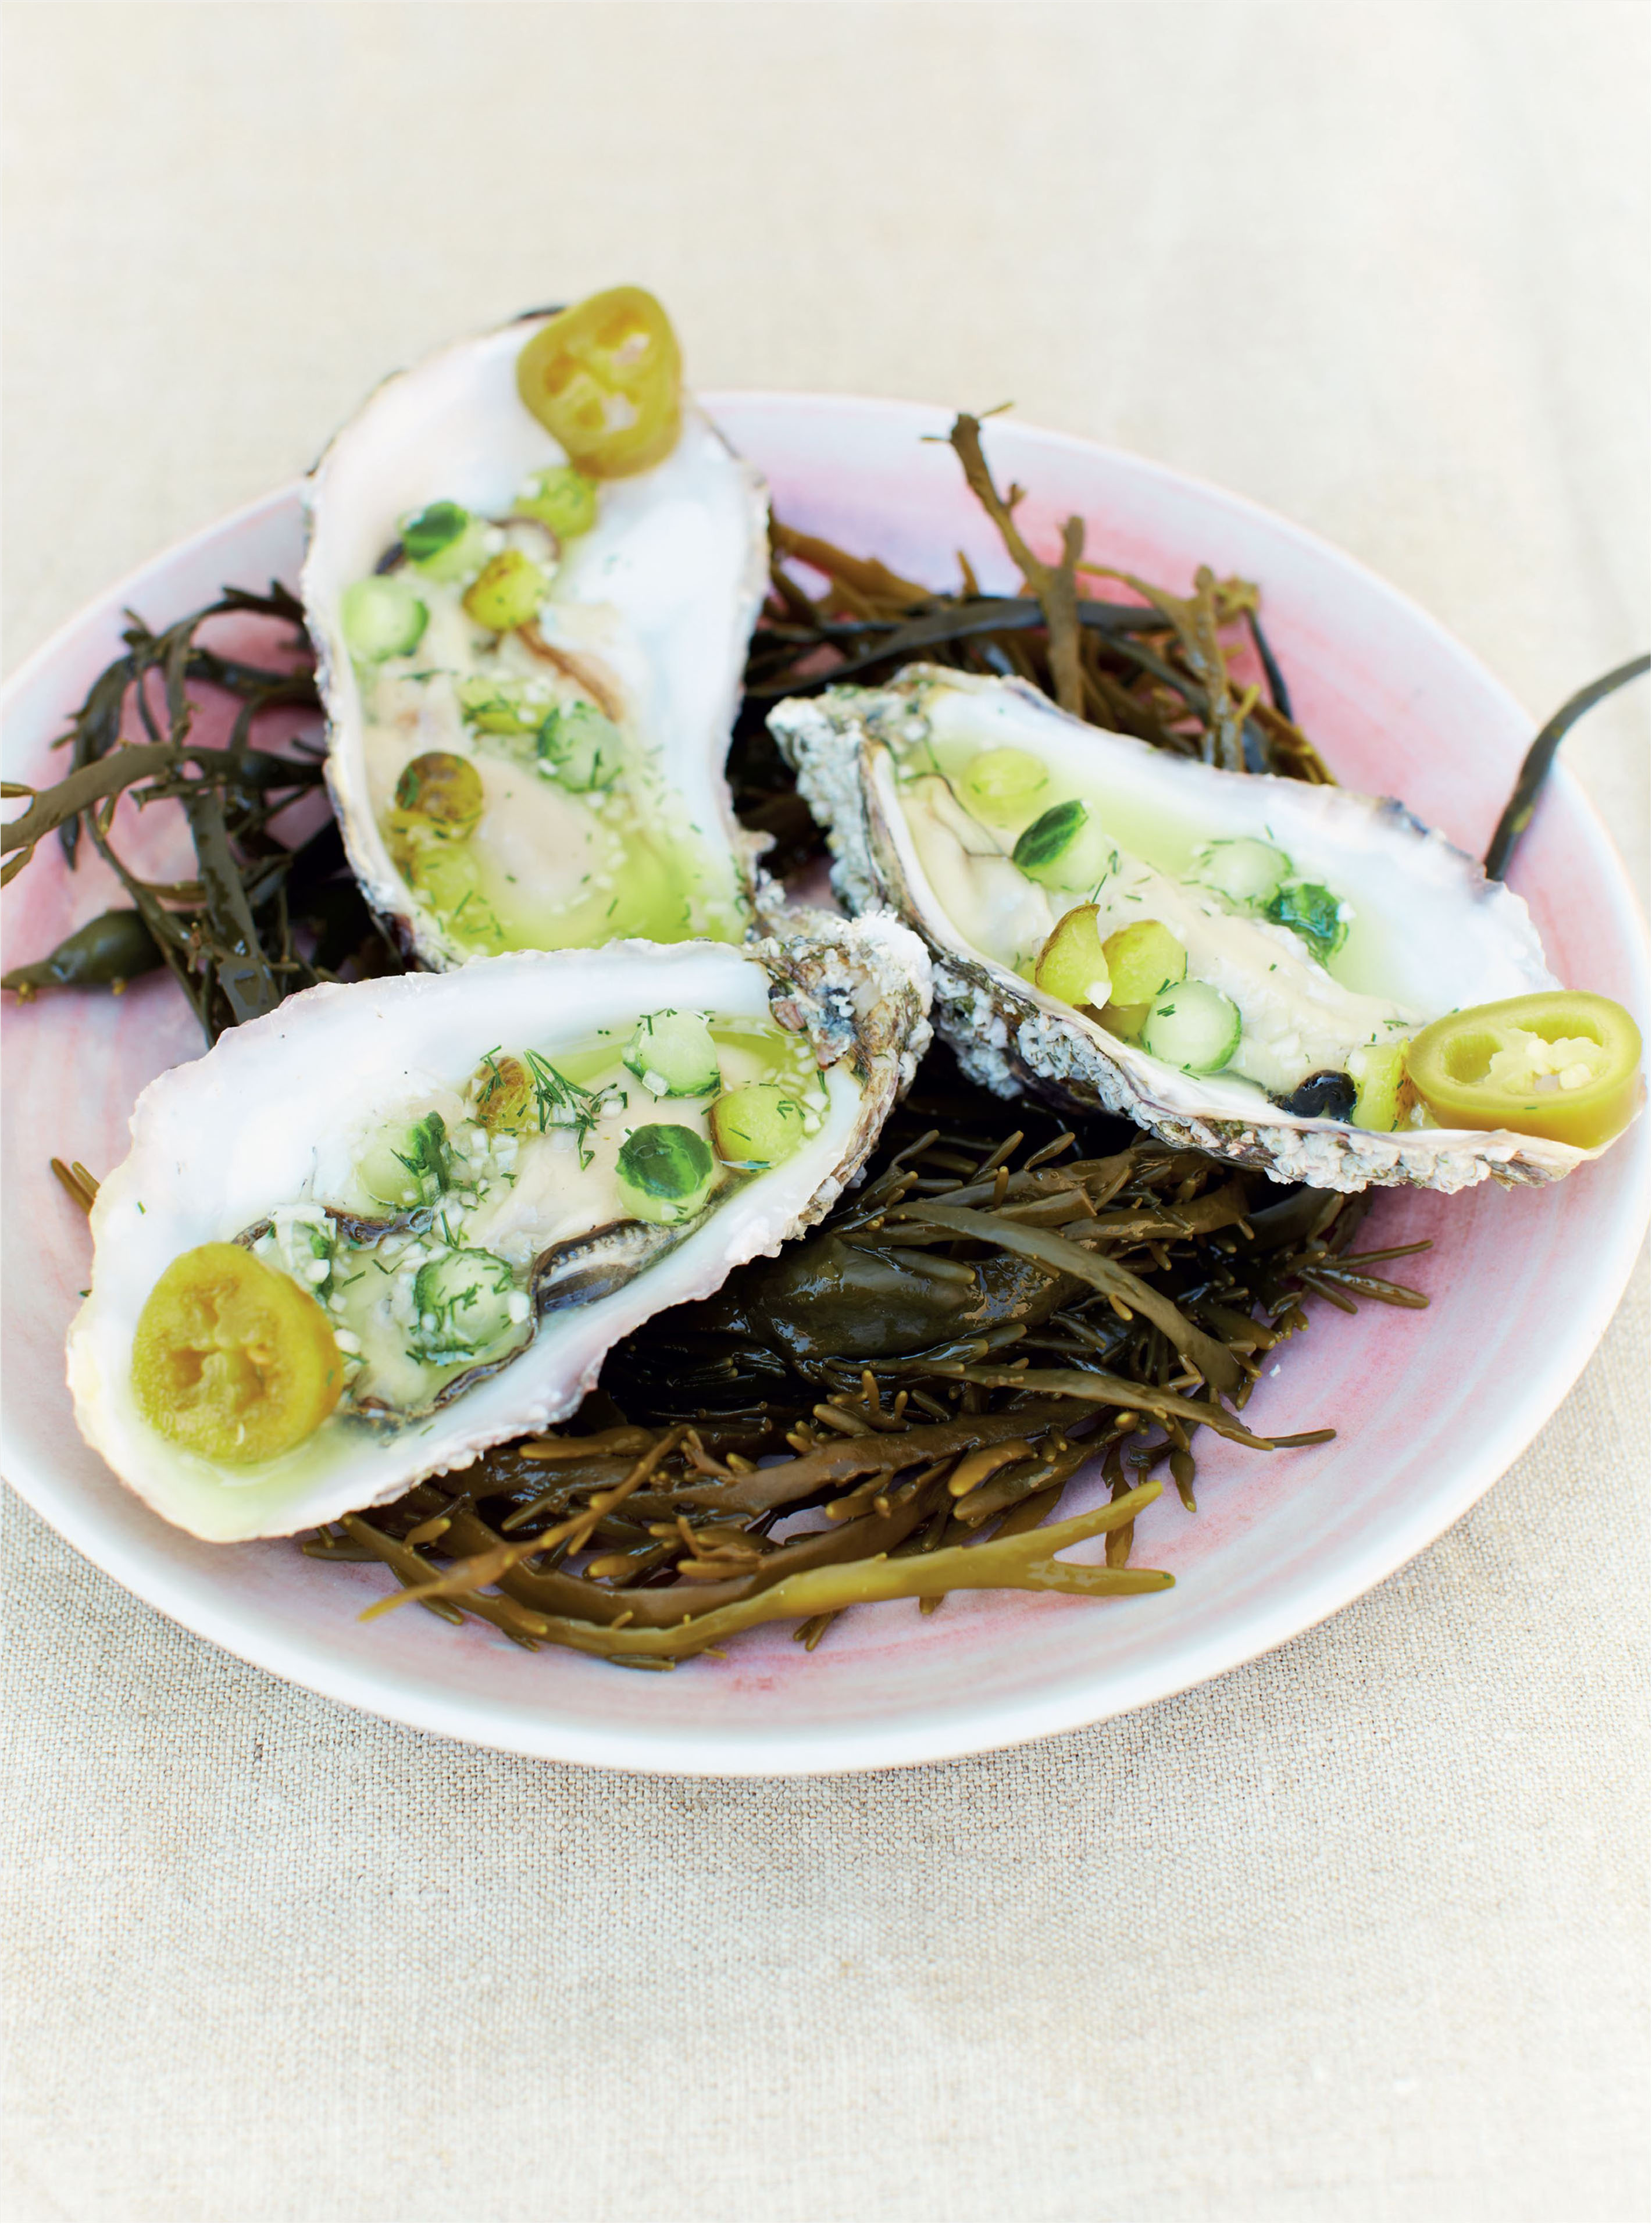 Lightly pickled oysters with gherkin, cucumber and jalapeño chilli